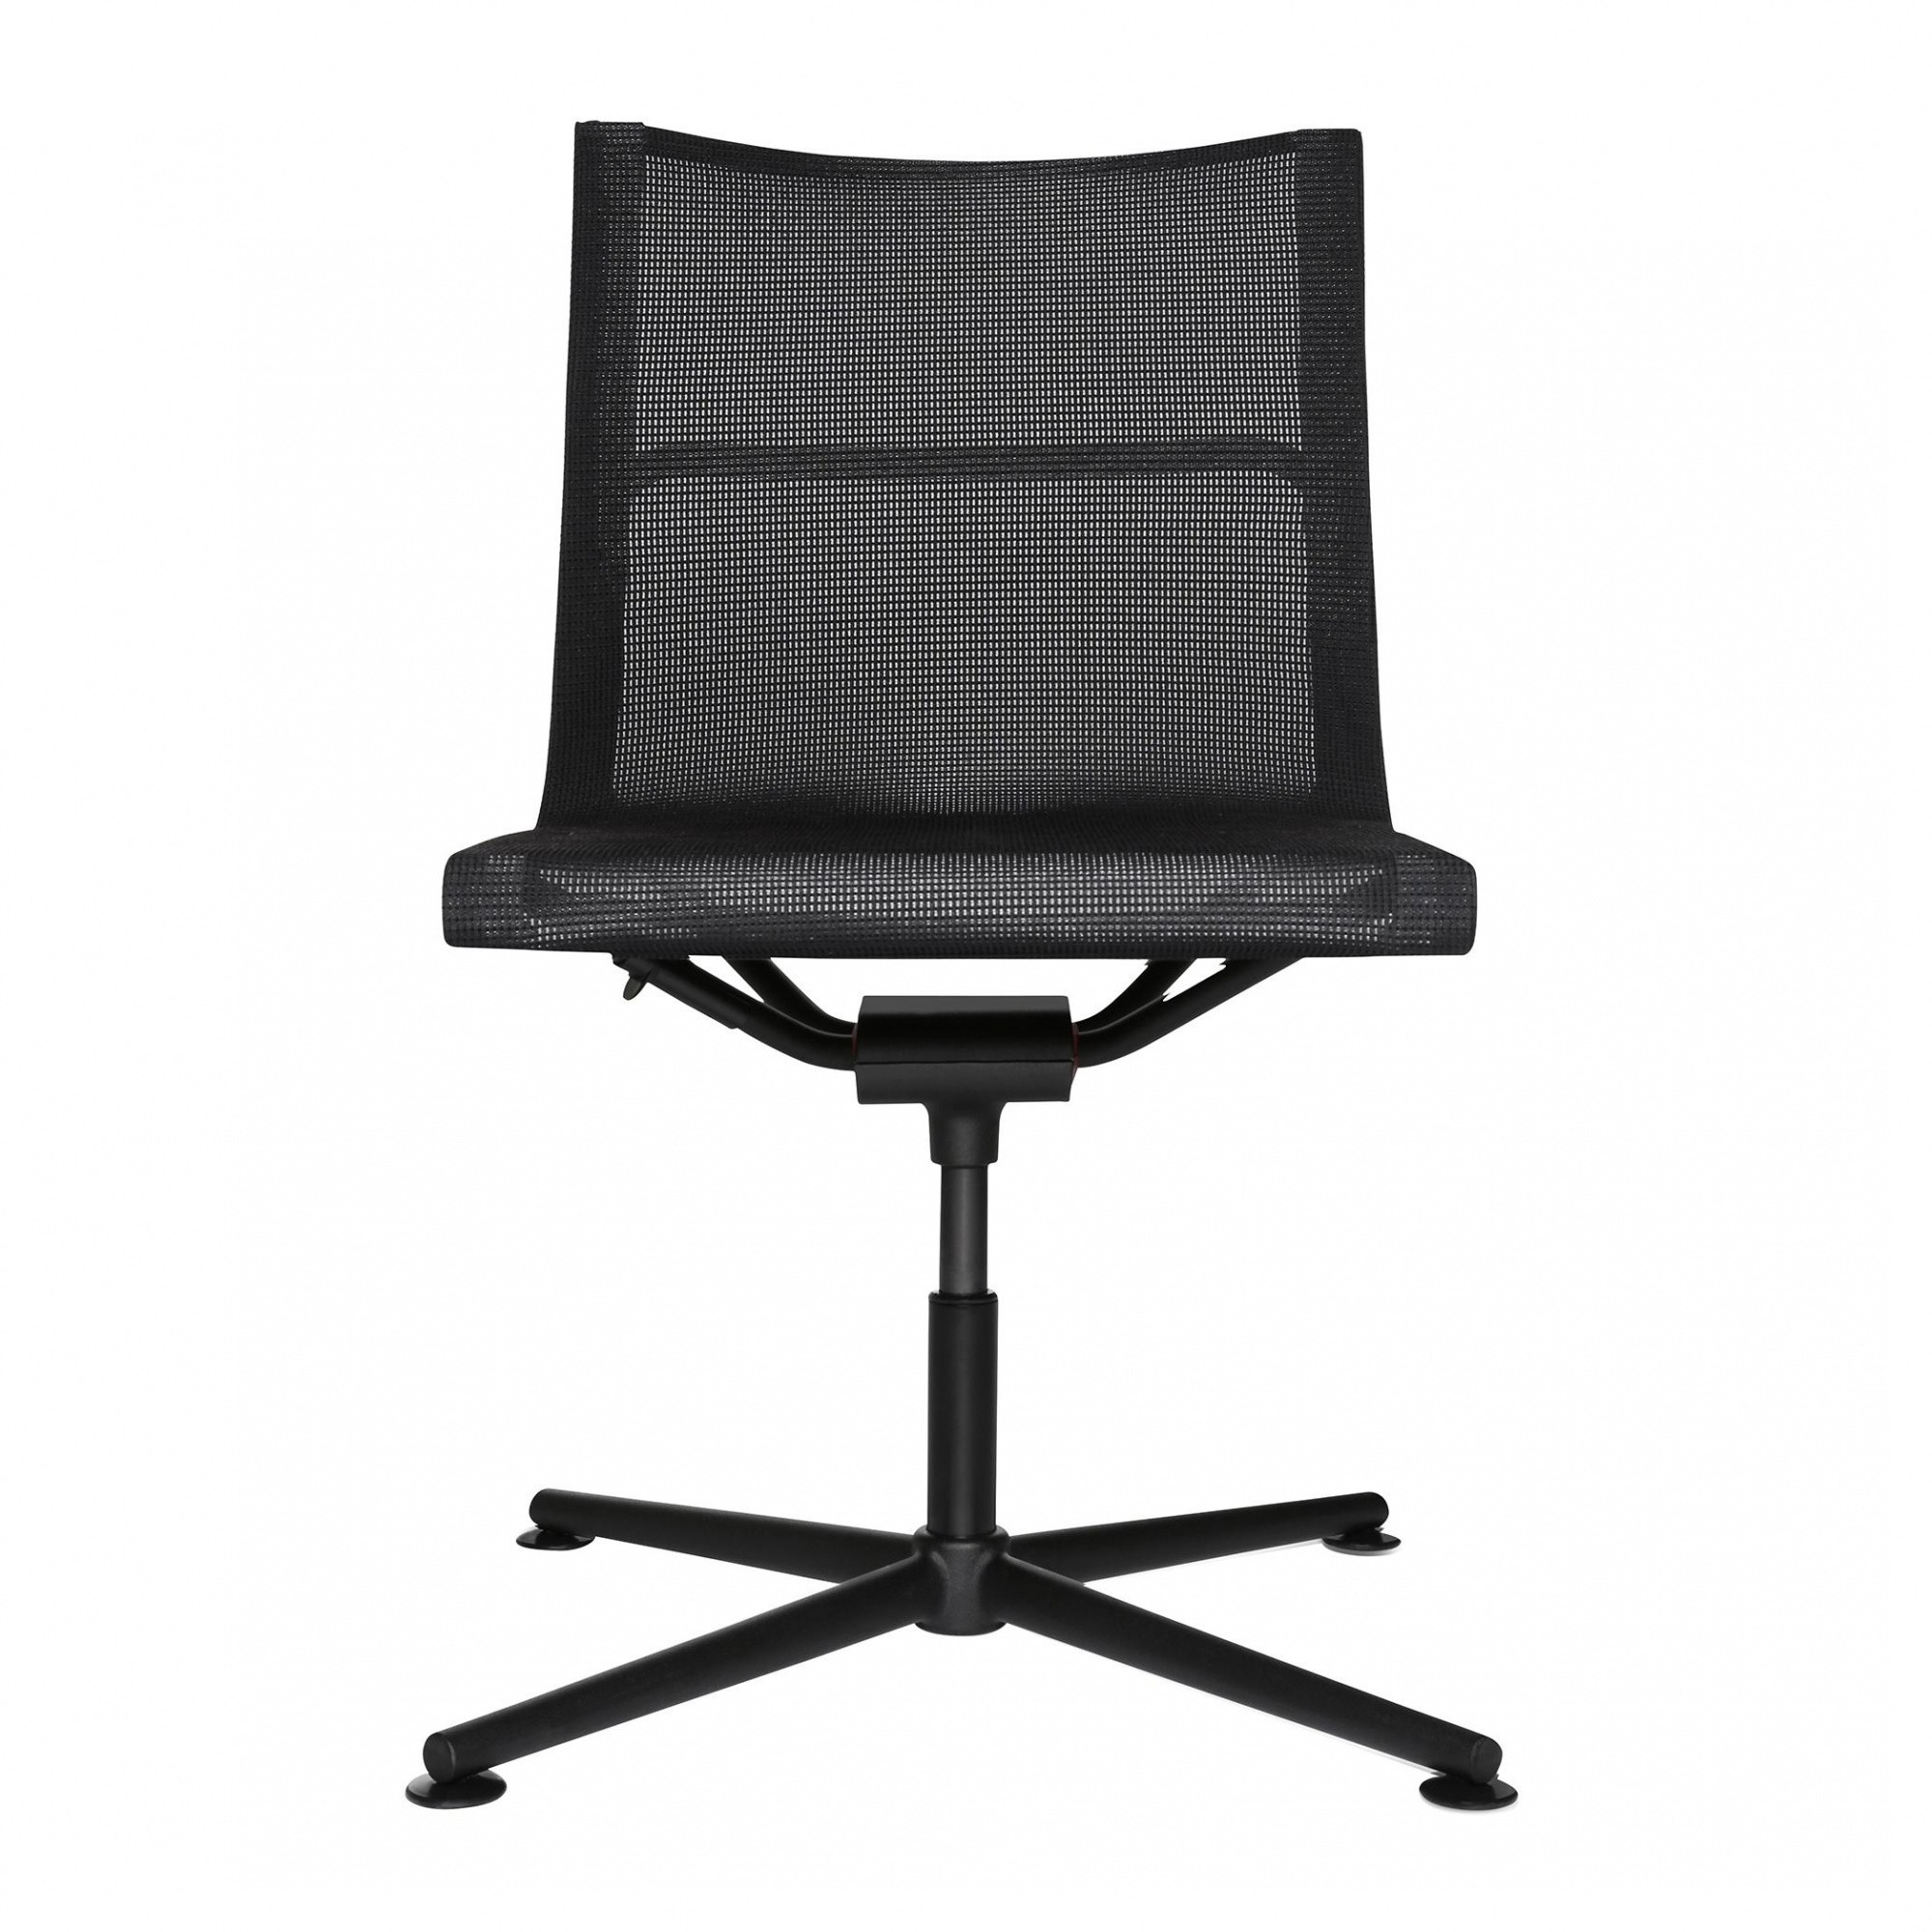 Wagner d1 office chair 4 legged ambientedirect